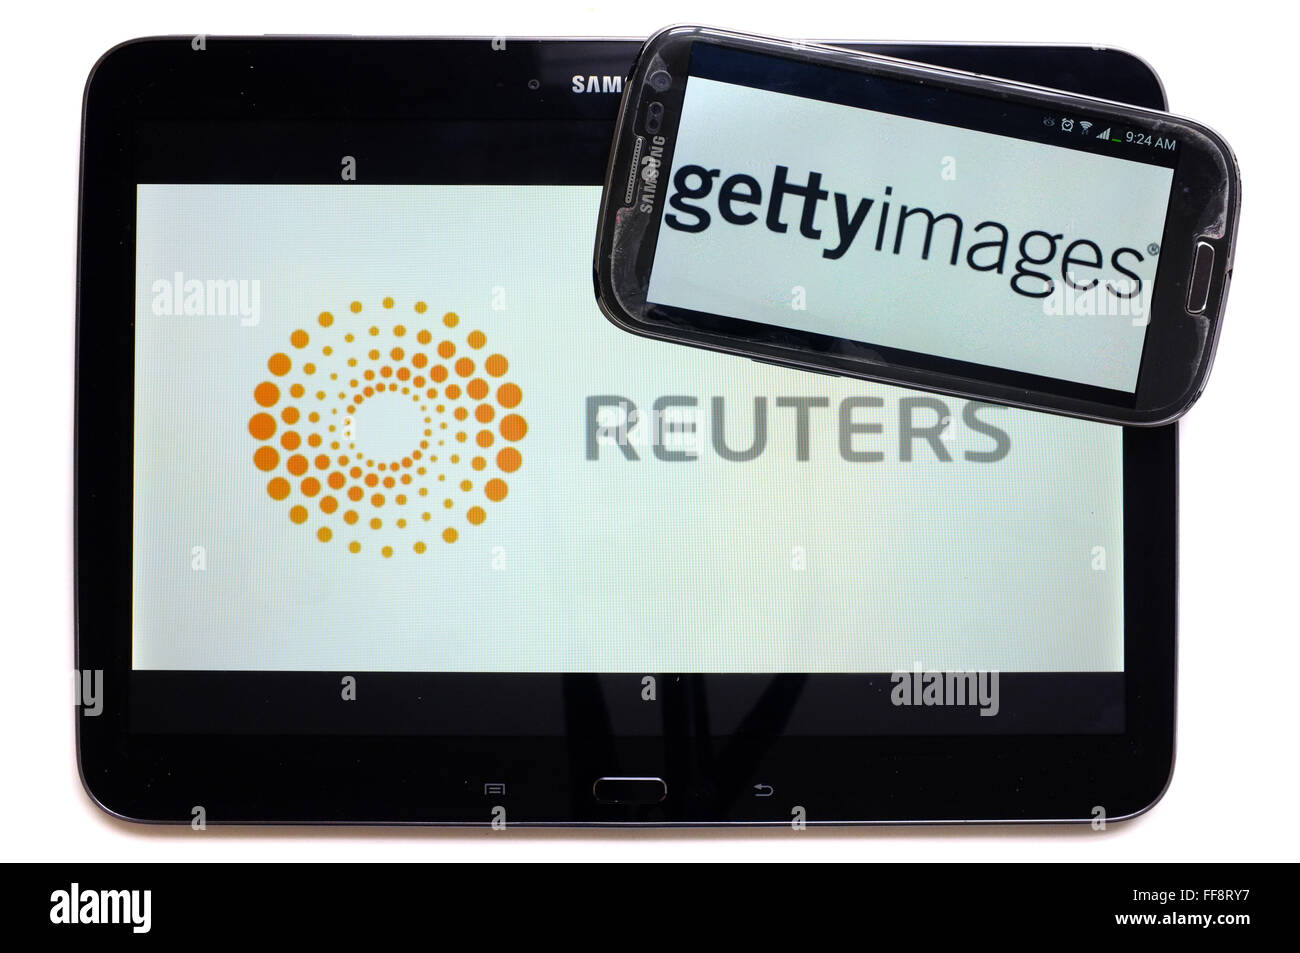 The news agencies getty images and Reuters on the screens of a tablet and a smartphone photographed against a white Stock Photo